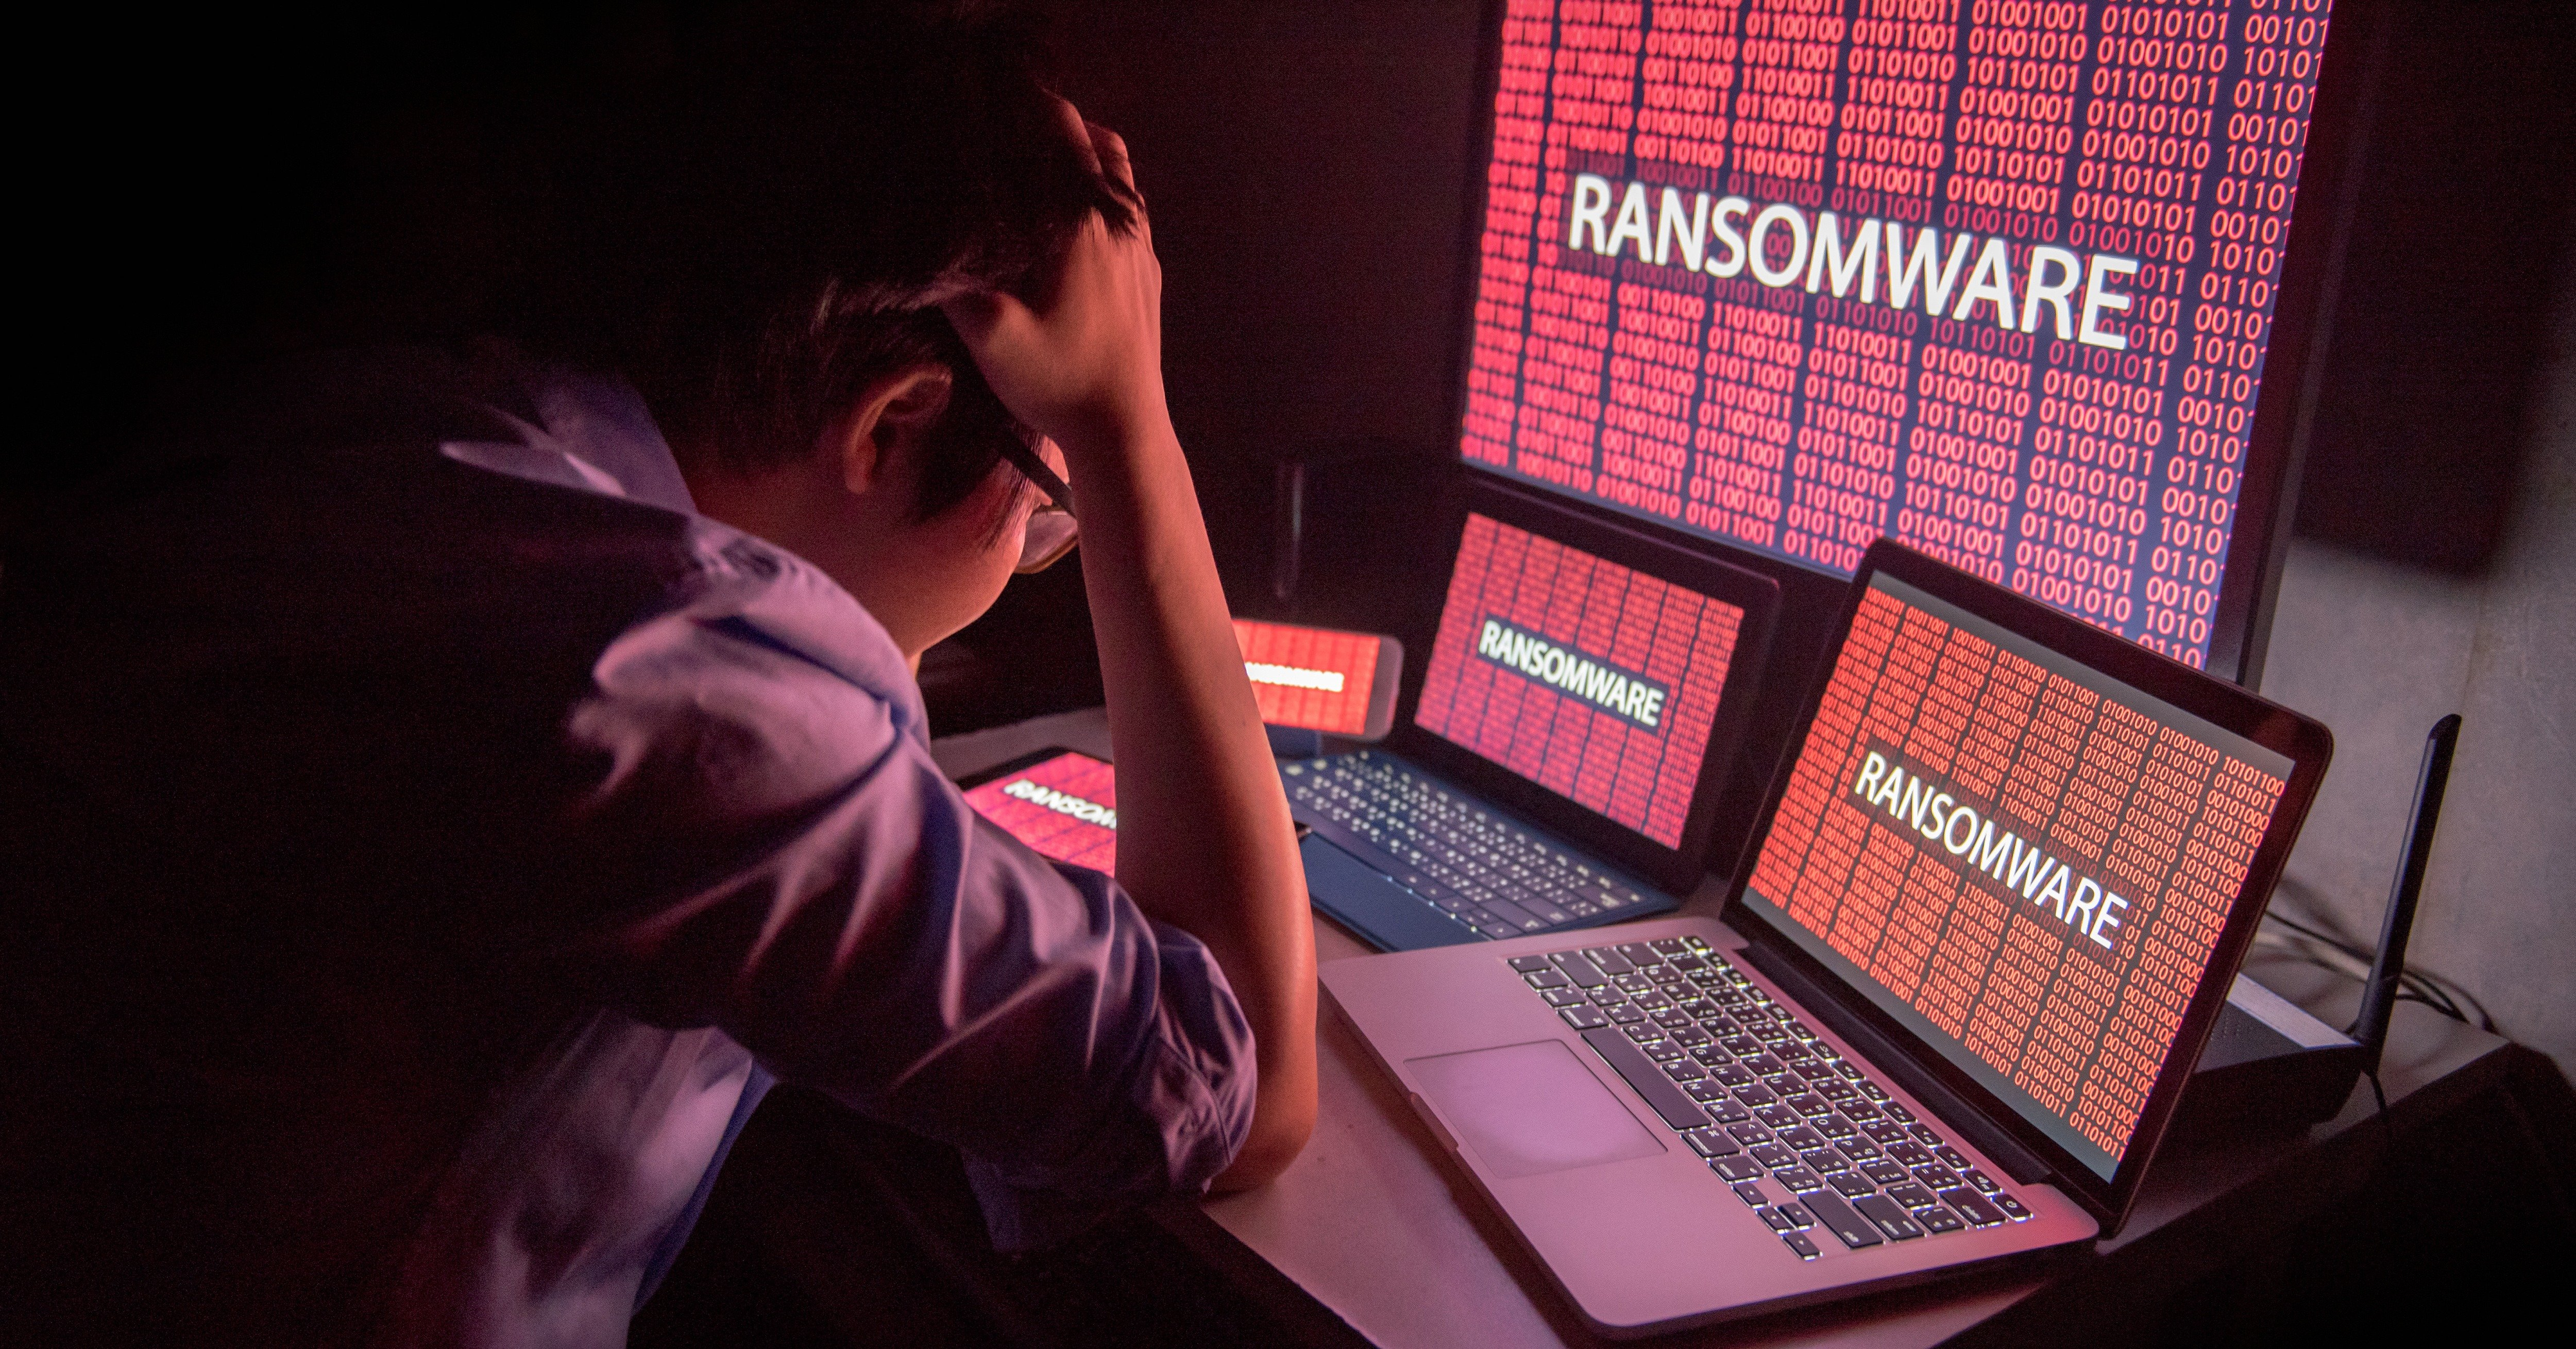 Ransomware : First Things to Do